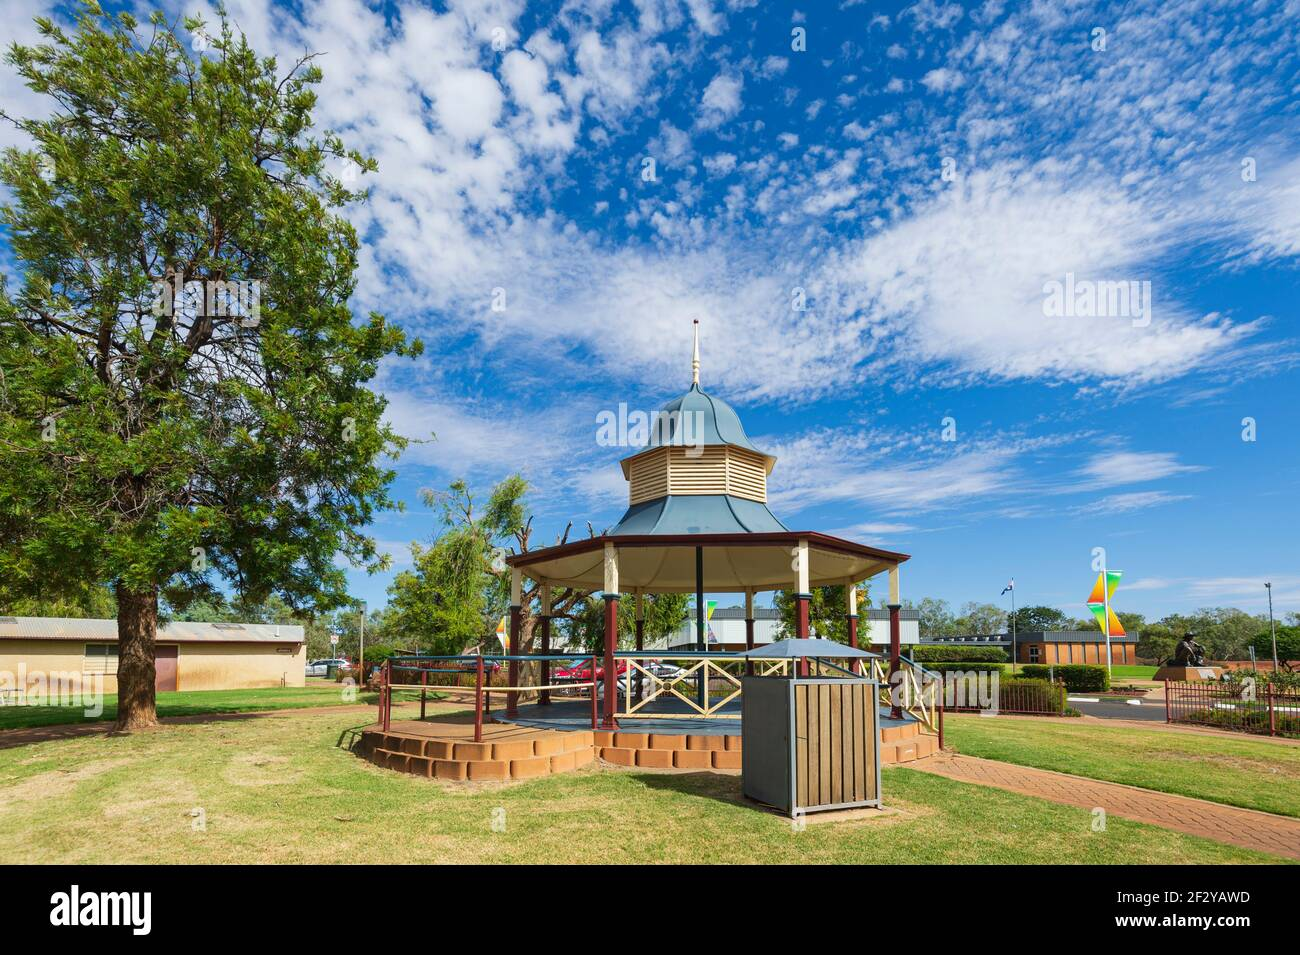 Scenic view of a pavillion in a public park in the small rural town of Cunnamulla, Queensland, QLD, Australia Stock Photo